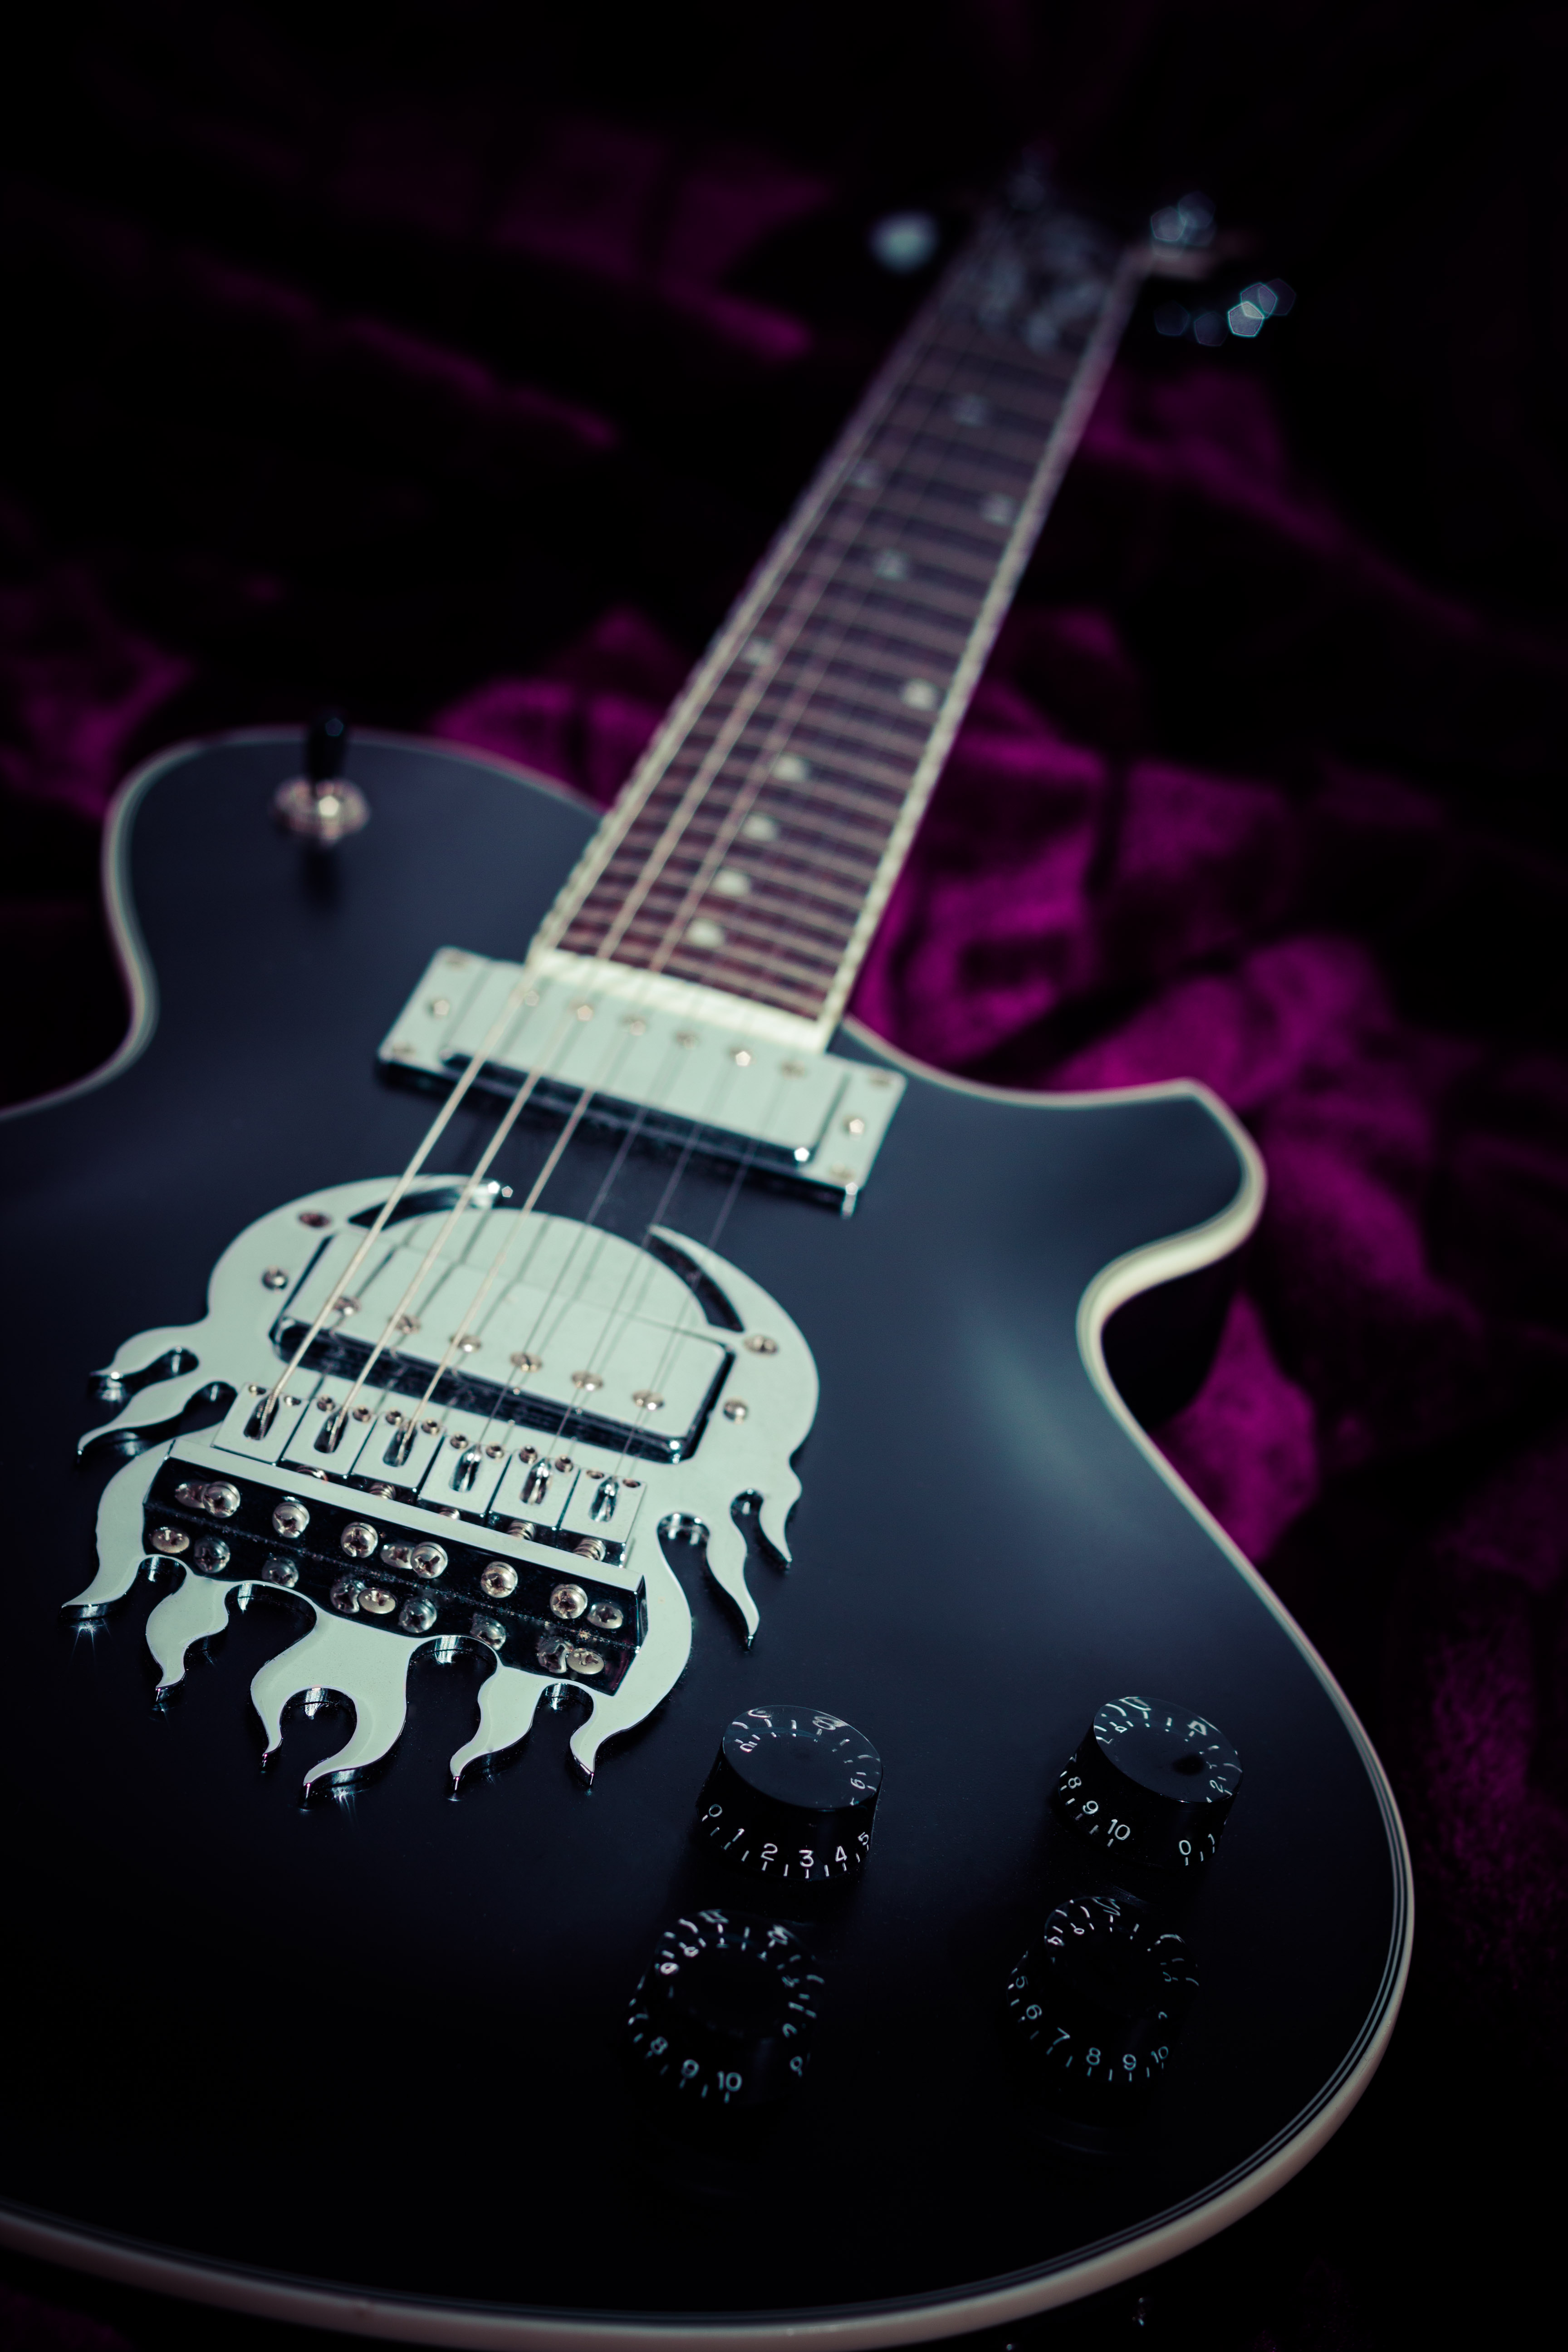 127808 download wallpaper Music, Electronic Guitar, Guitar screensavers and pictures for free